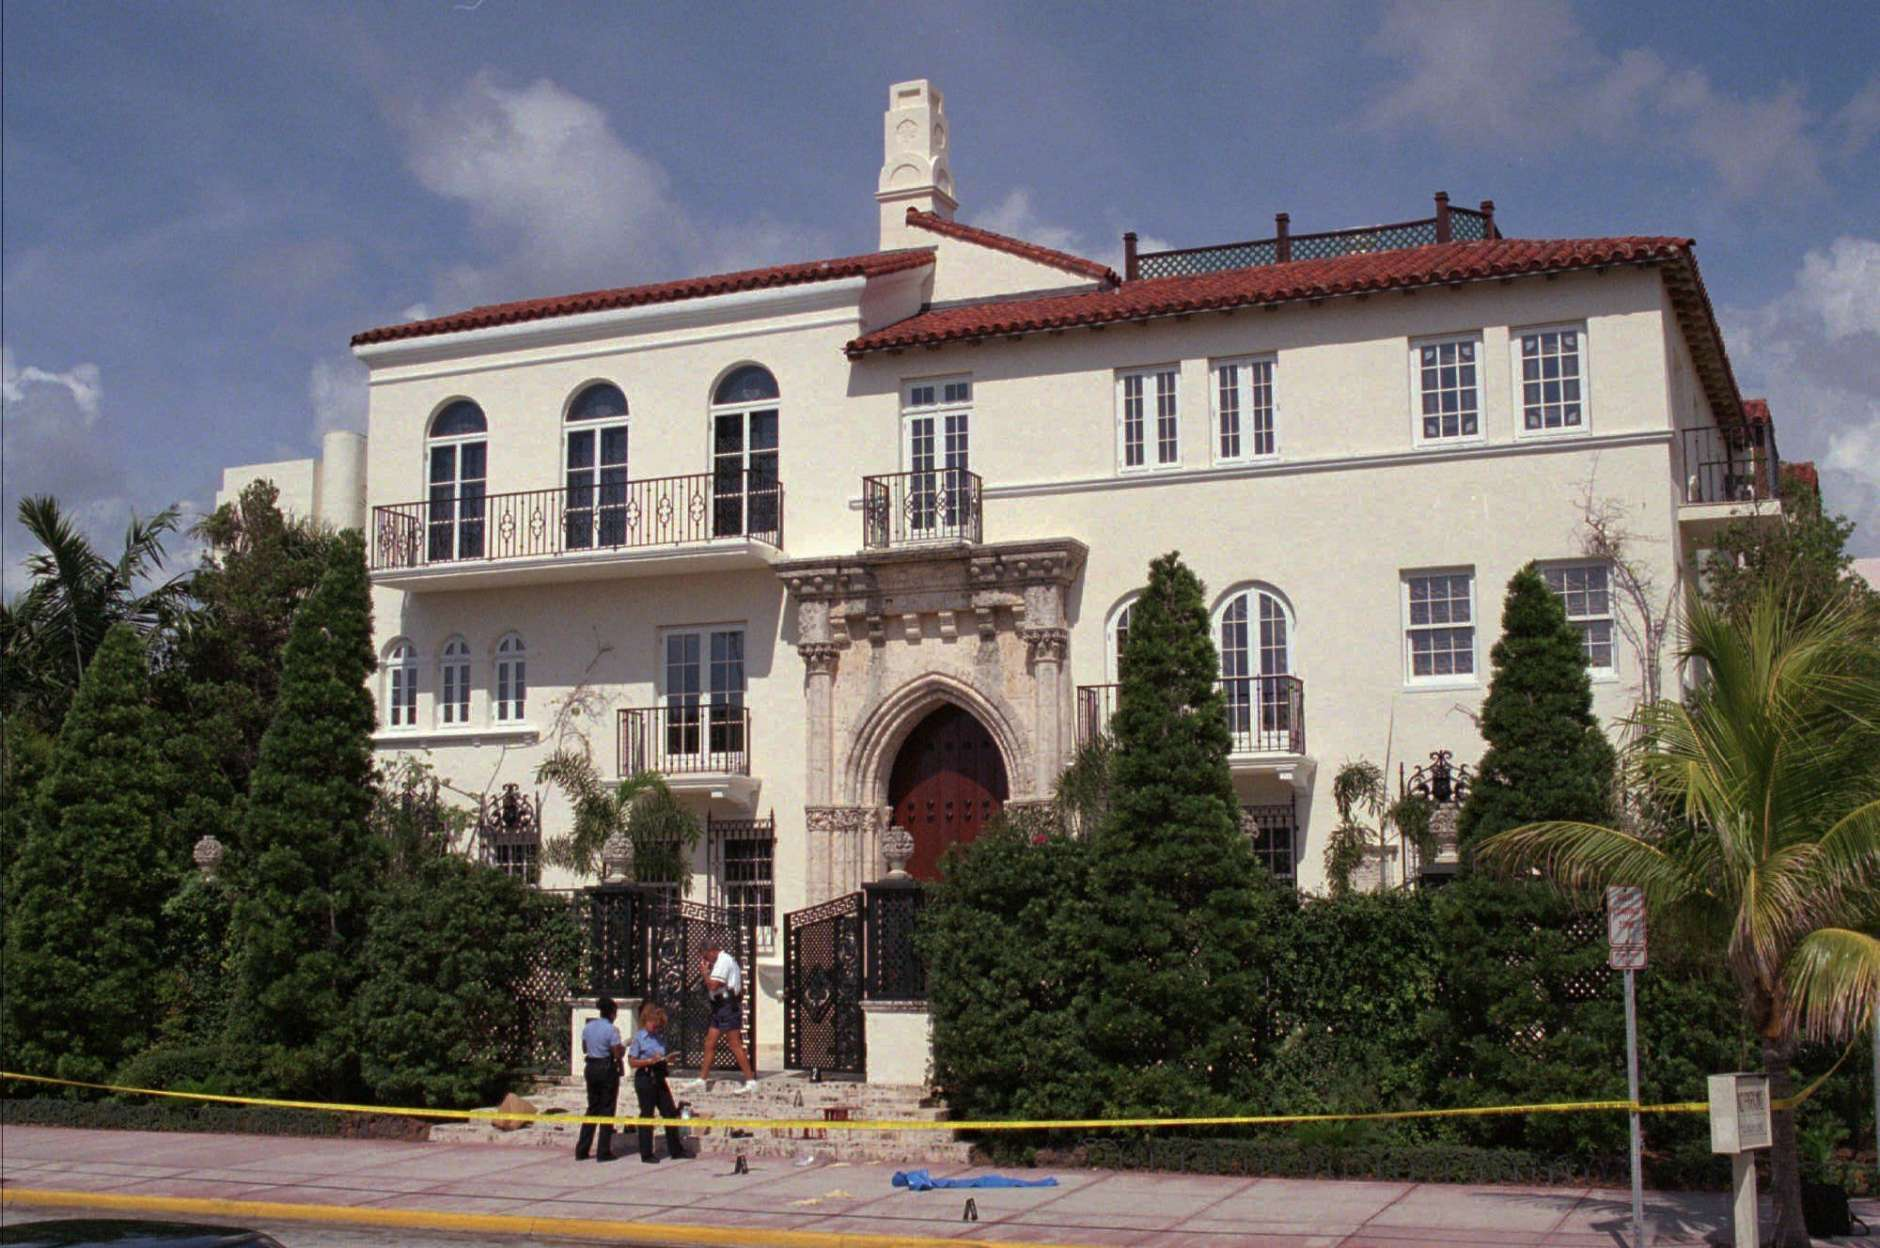 The mansion of Italian fashion designer Gianni Versace is flanked with police and small flags indicating evidence in the shooting death of the famed designer Tuesday, July 15, 1997. The 50-year-old Versace was shot on the steps of his Miami Beach home by an unknown suspect, described as being a male in his 20's.  (AP Photo/Gregory Smith)